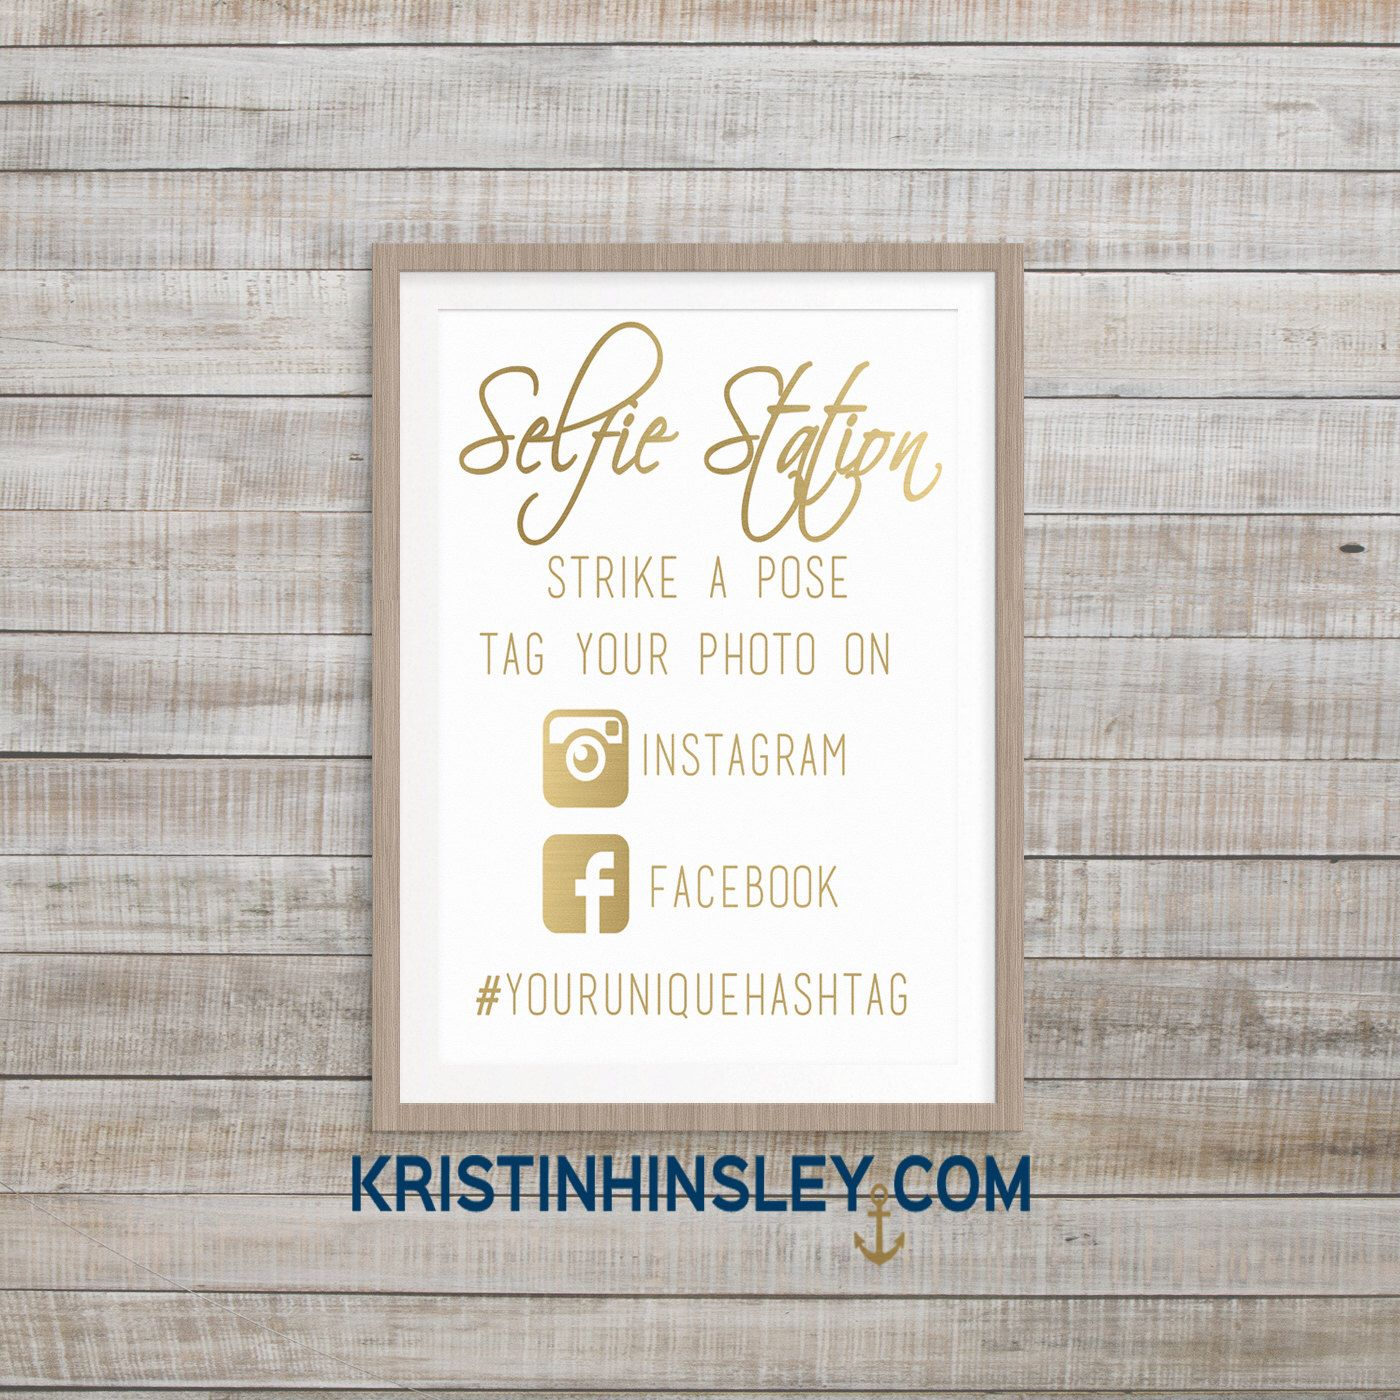 Selfie Station Photo Booth Printable Sign, Gold Foil printable sign,  Strike a Pose Instagram hashtag Wedding Reception Sign, Birthday Party by Kristinhinsley on Etsy https://www.etsy.com/listing/265563735/selfie-station-photo-booth-printable